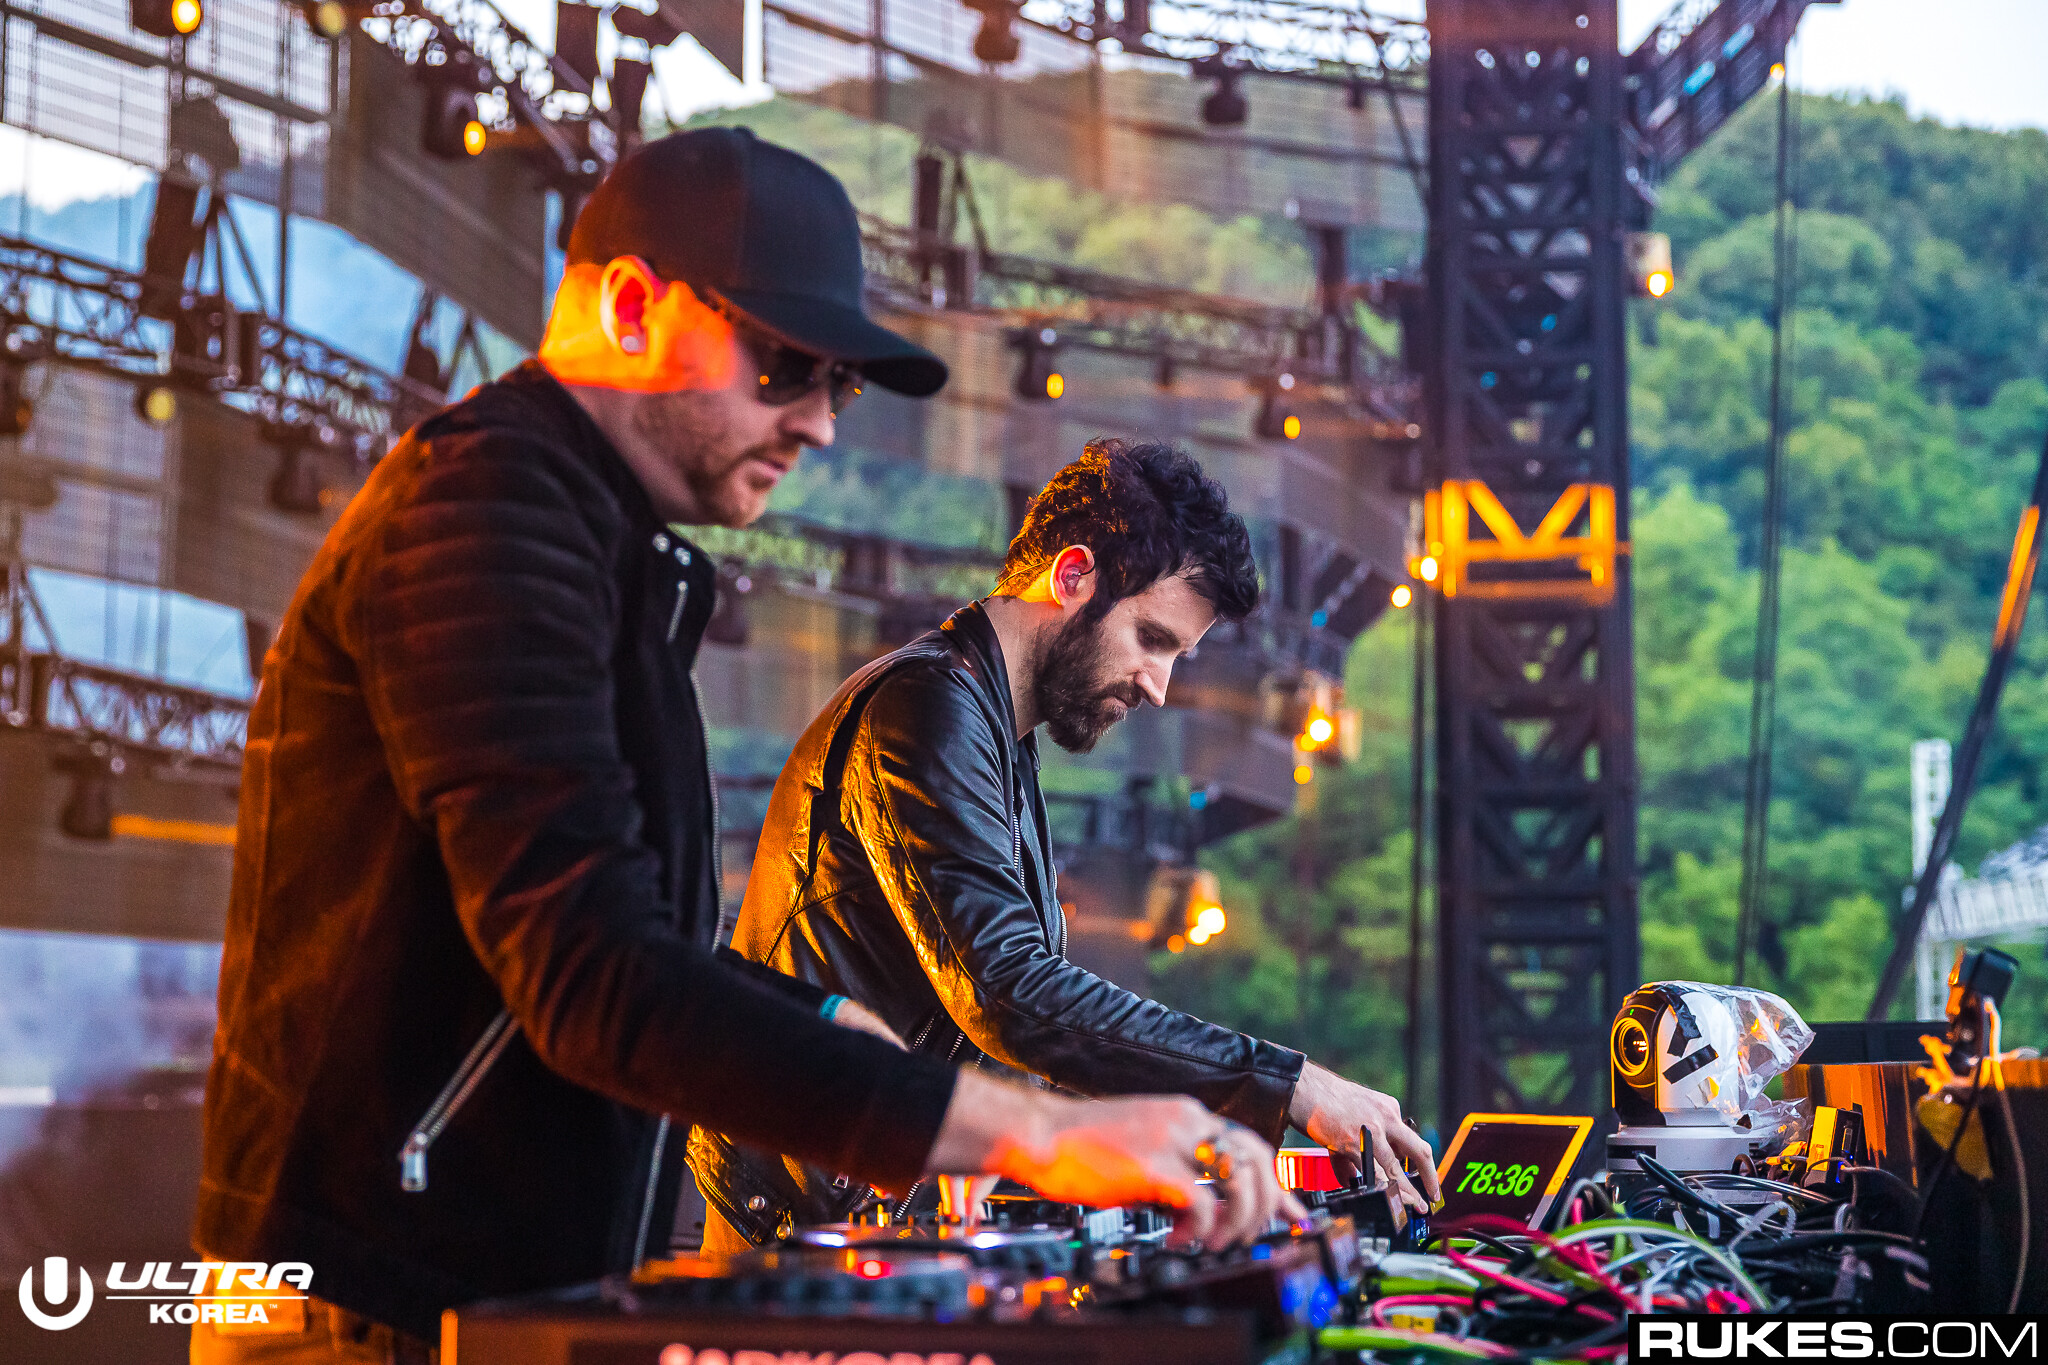 Knife Party Confirm 'Lost Souls' EP Coming Out This Month